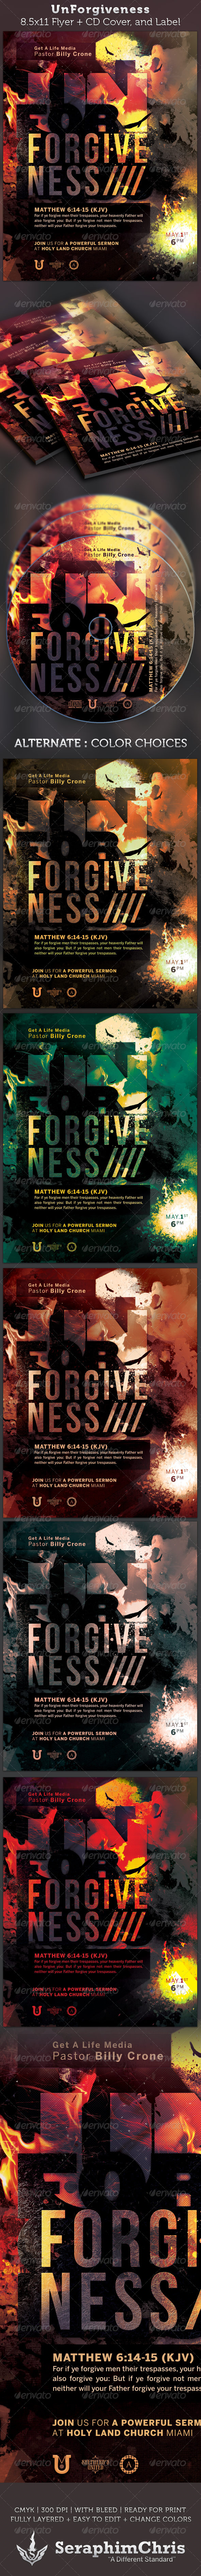 Unforgiveness Full Page Flyer and CD Cover - Church Flyers